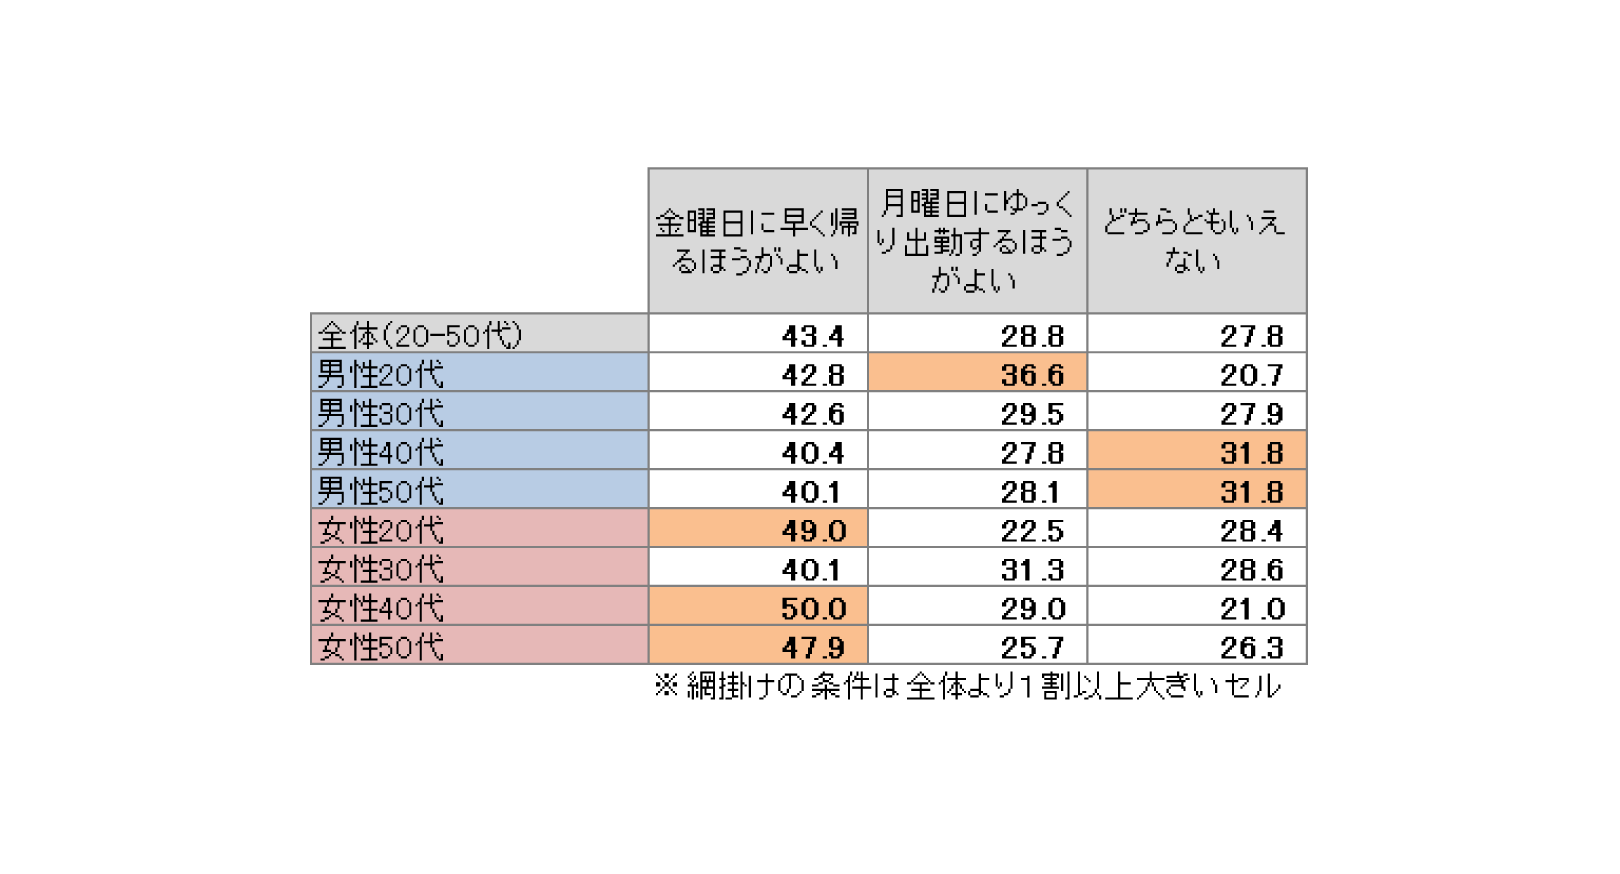 201808-20-fig-08.png